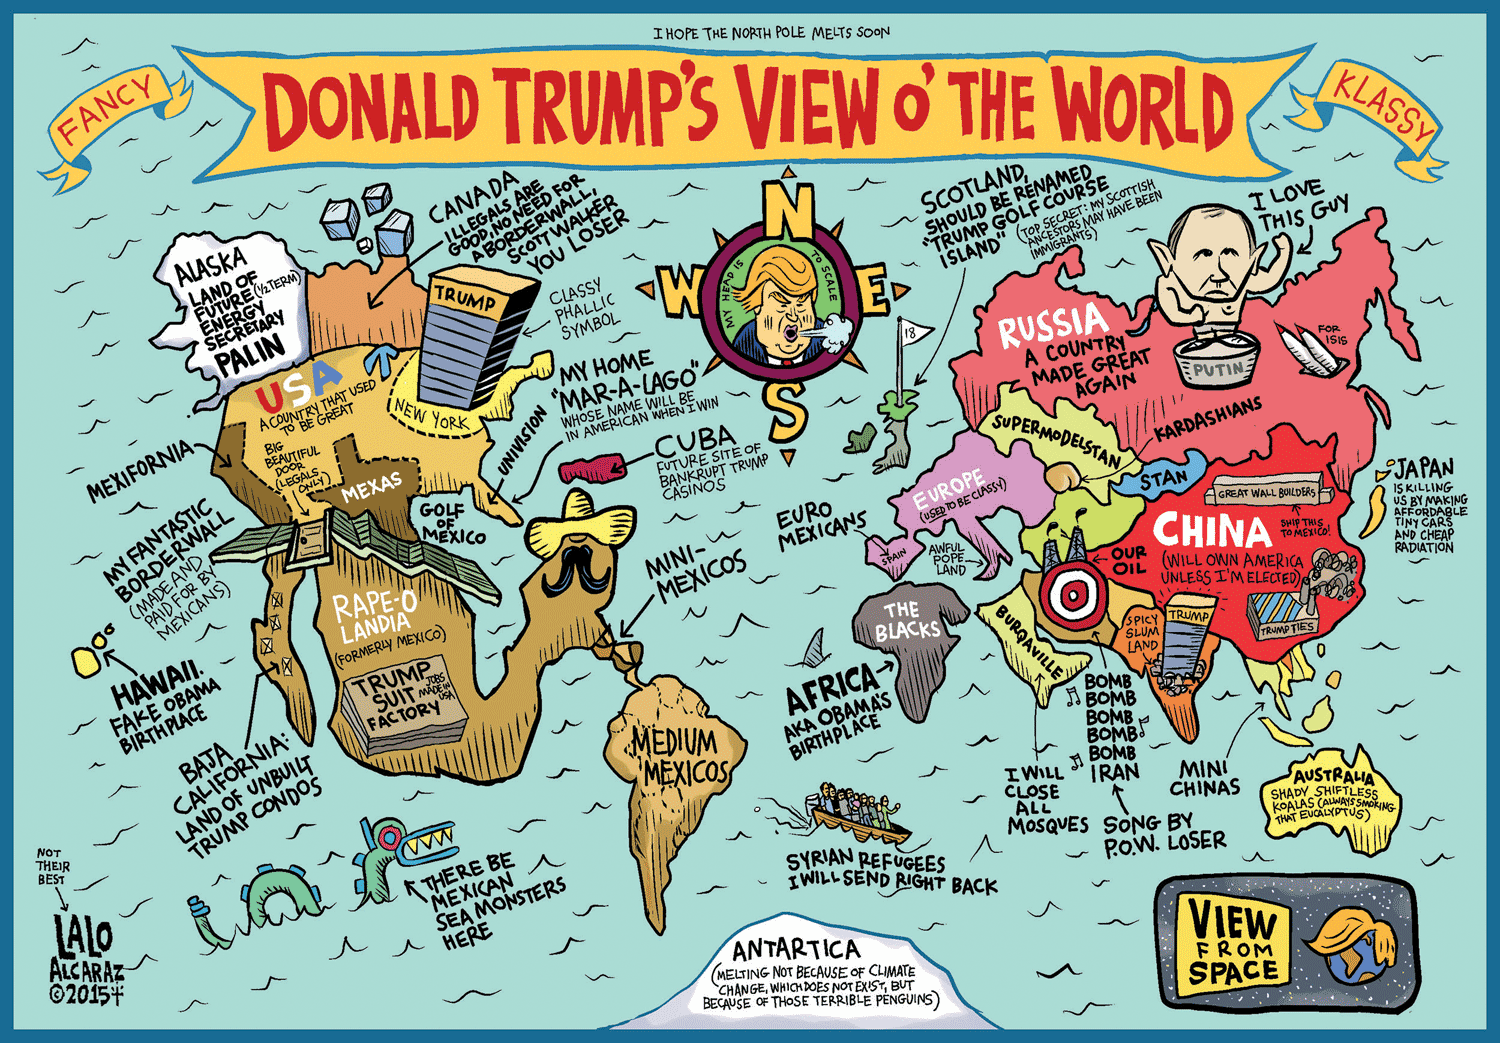 http://fusion.net/story/210905/lalo-alcaraz-world-map-according-to-donald-trump/